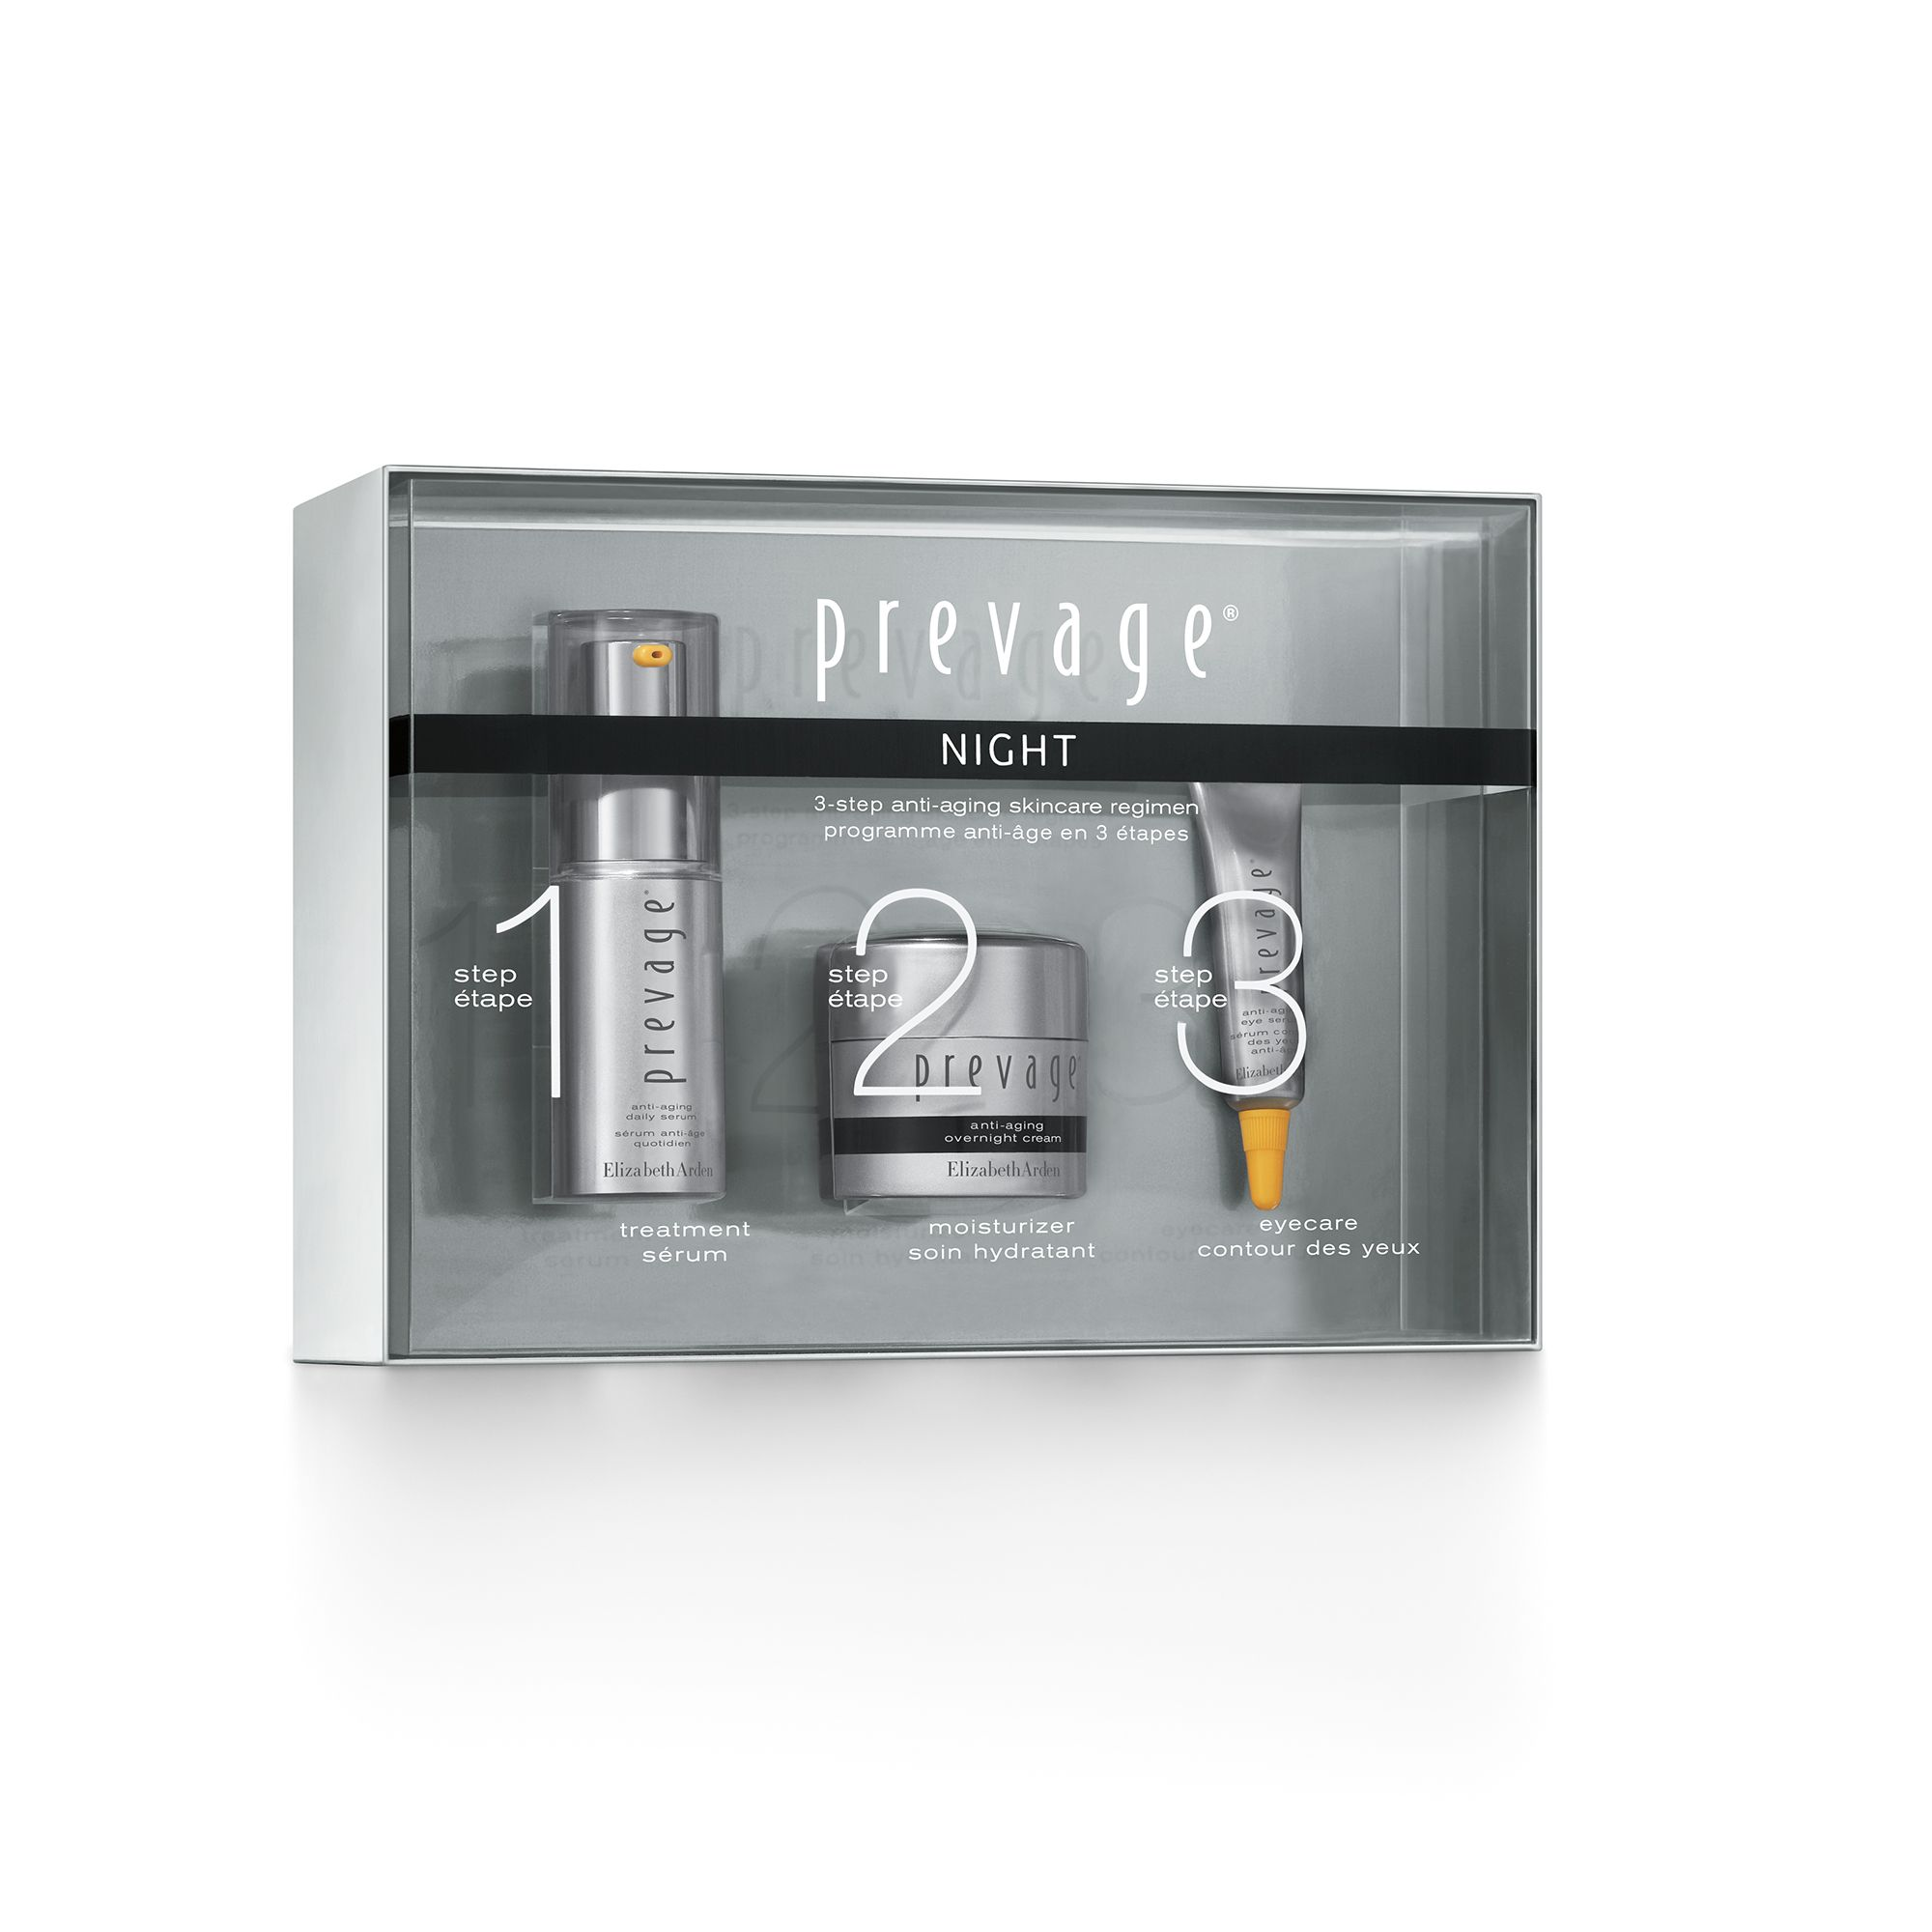 PREVAGE: PM REGIMEN KIT